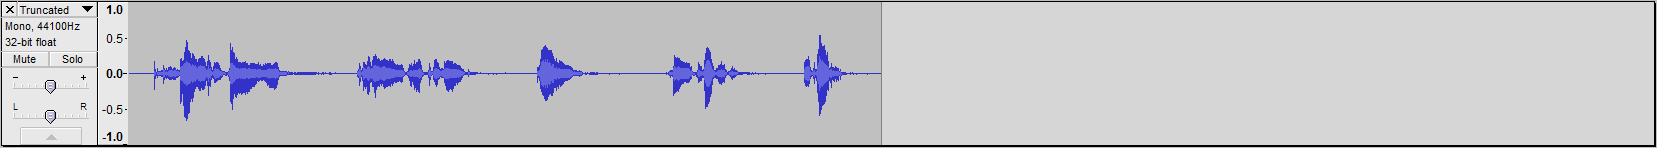 Audacity-Waveform-Truncated